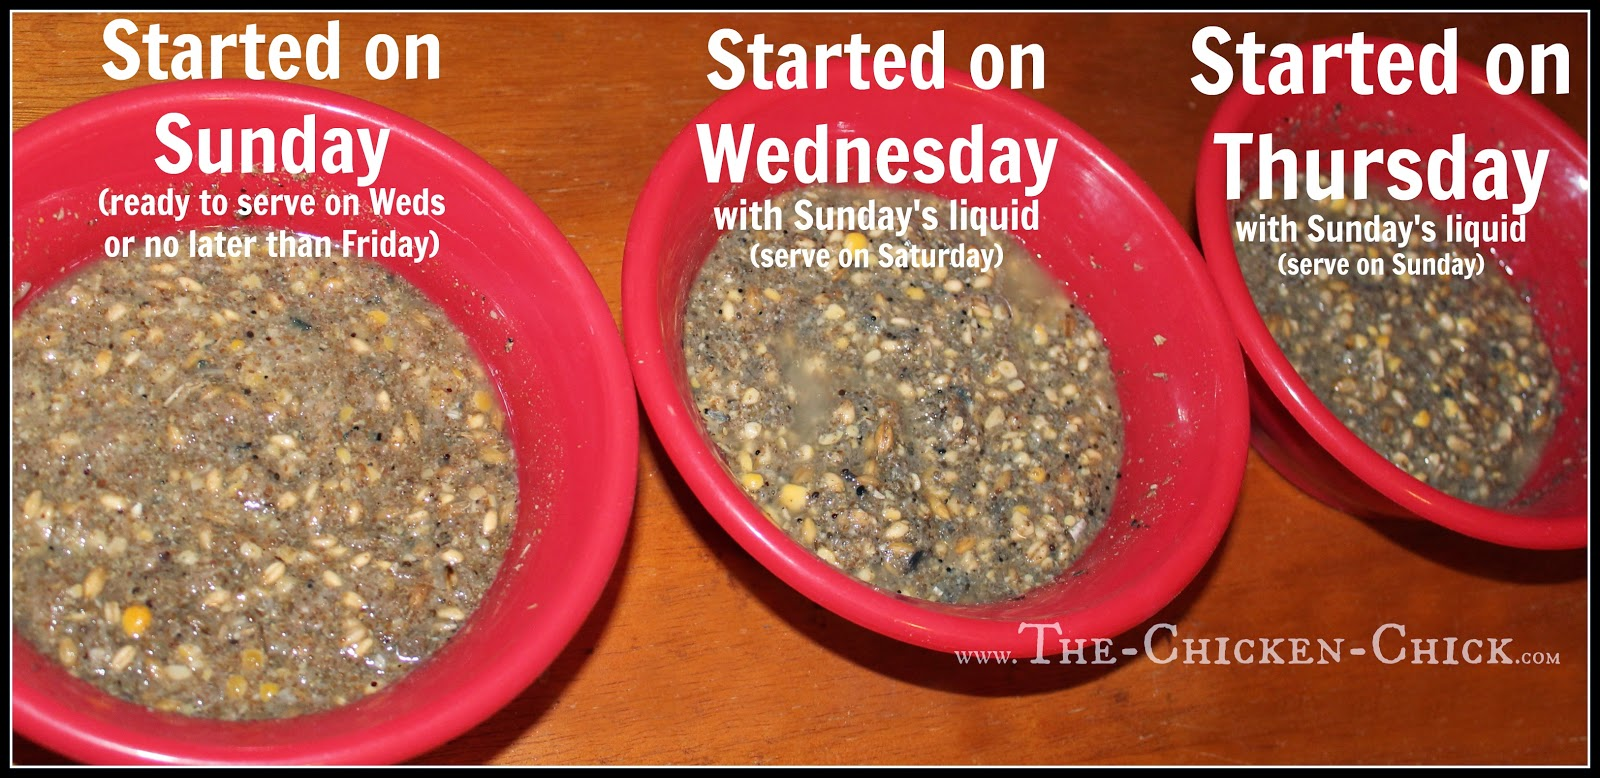 HOW TO FERMENT CHICKEN FEED 3 steps in 3 days!